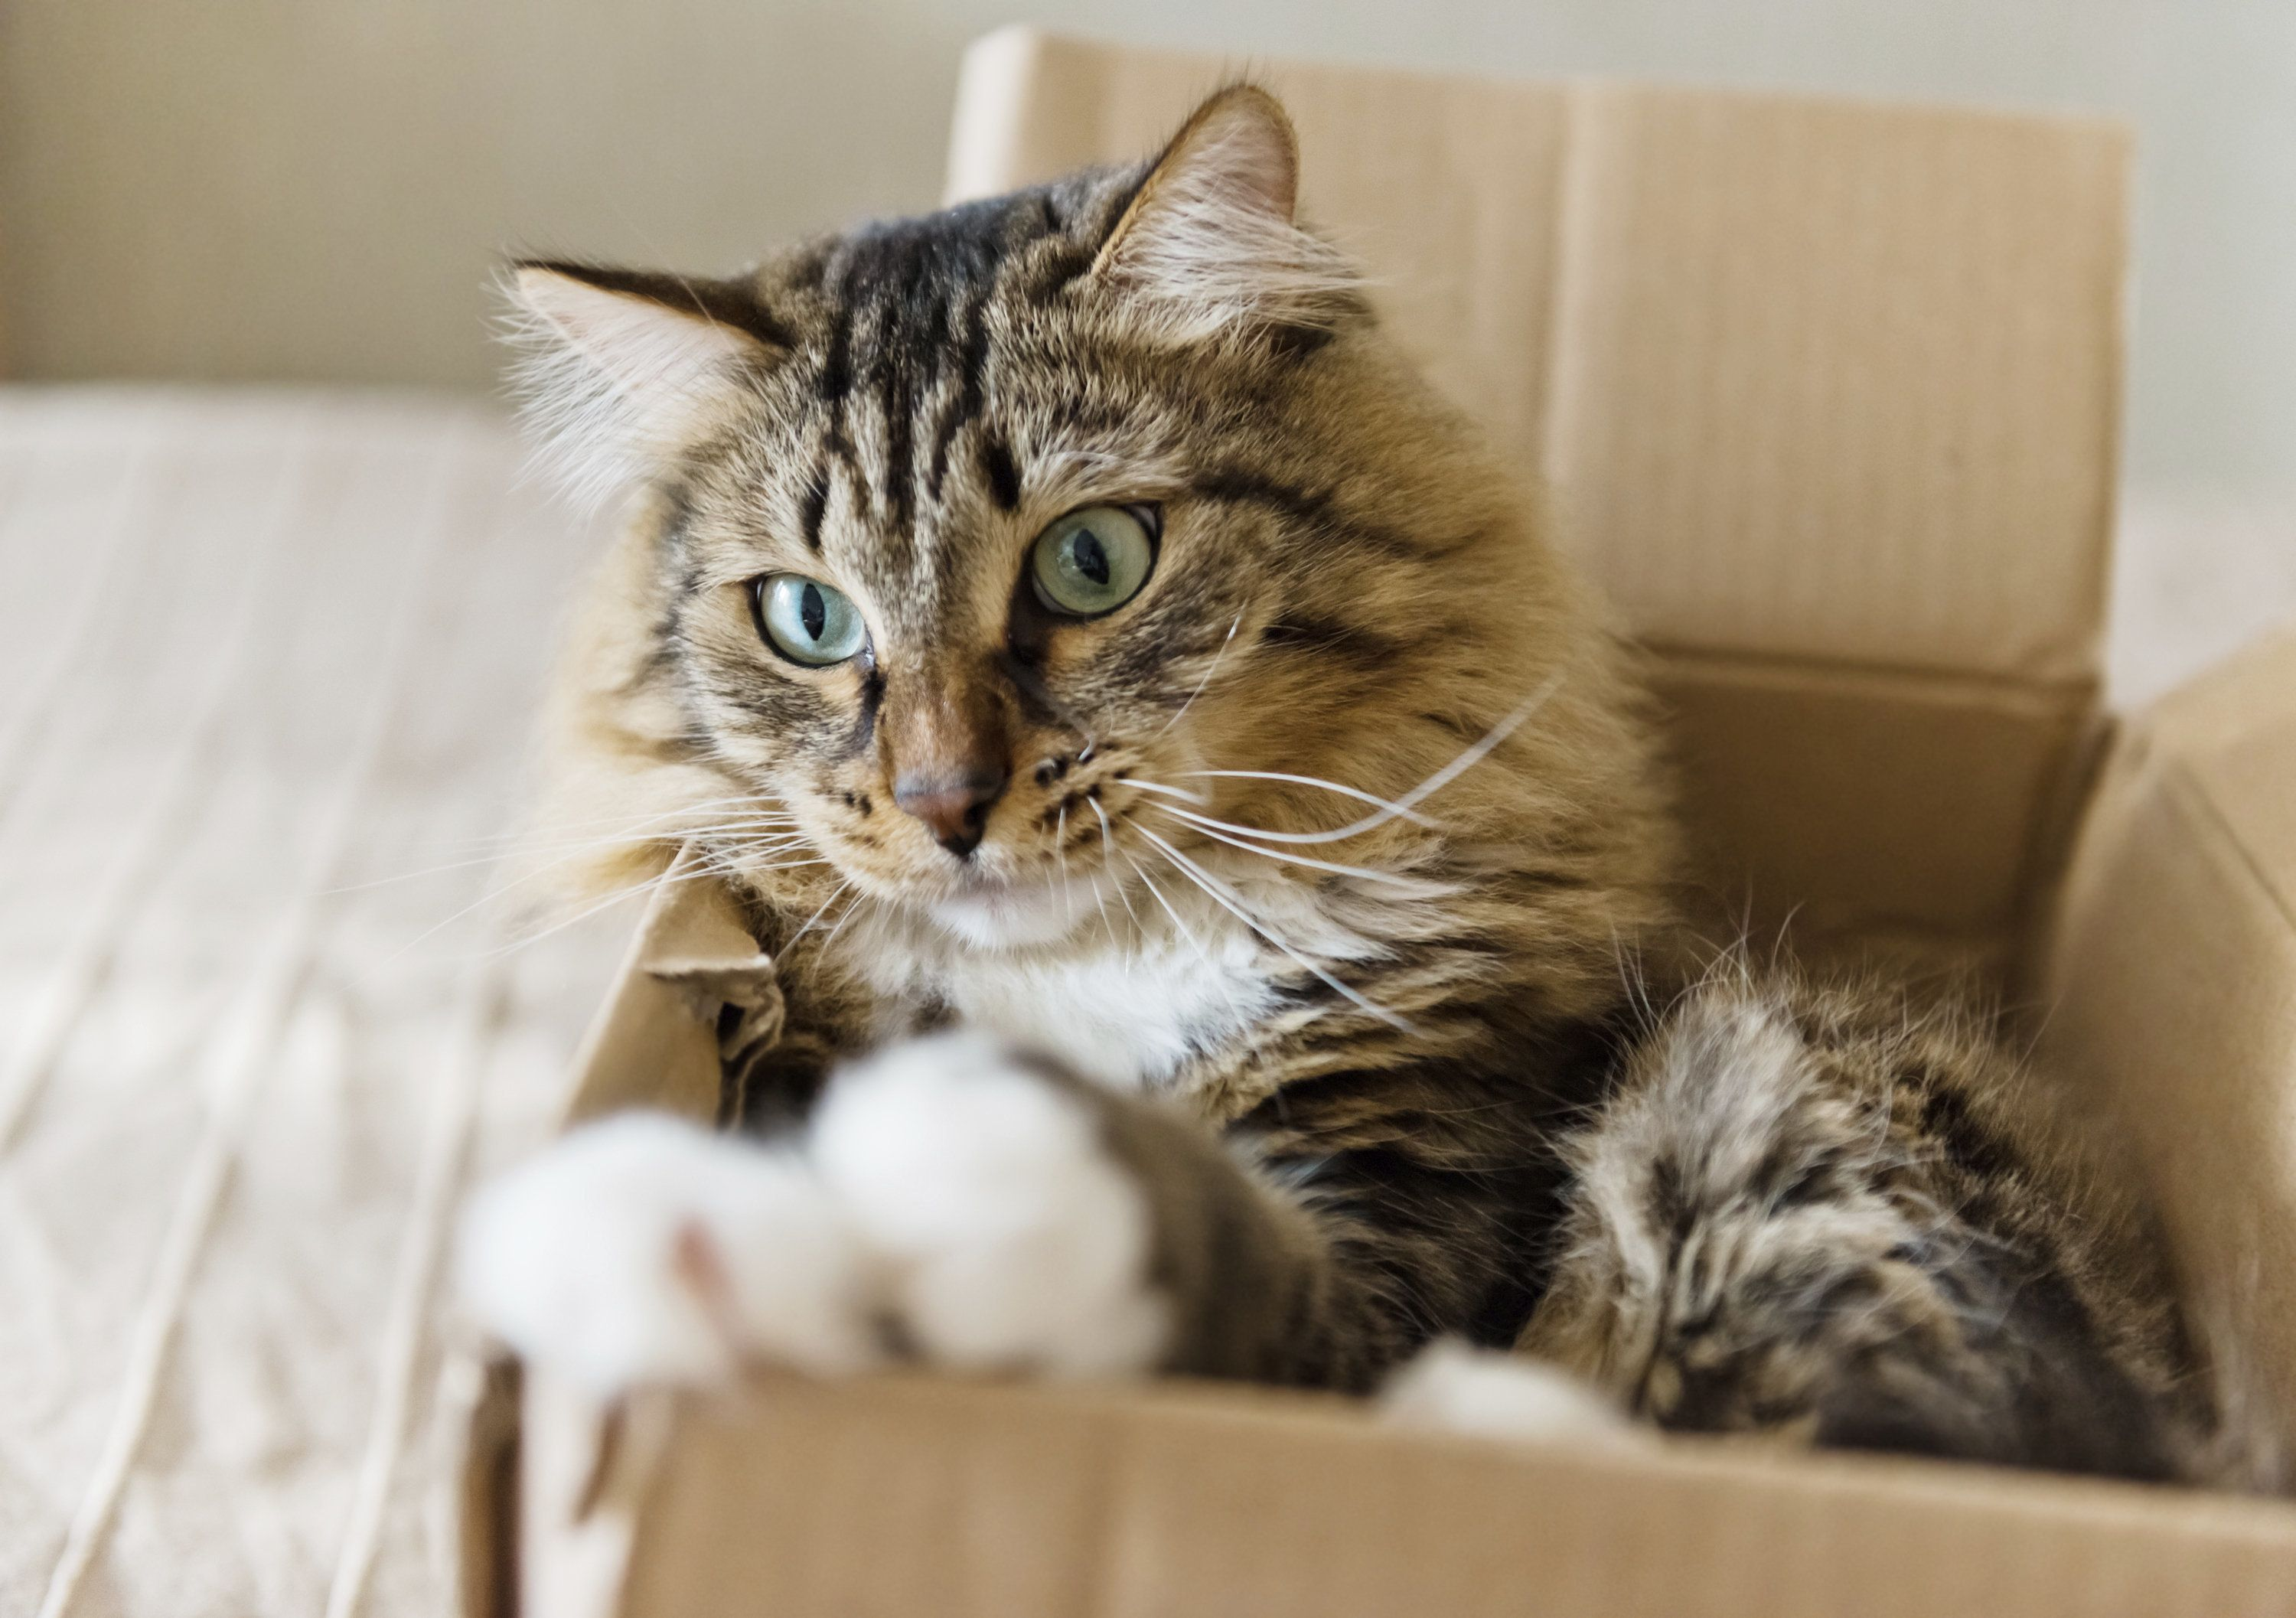 You can take a cat out of the box but -- well, actually you probably shouldn't try it.